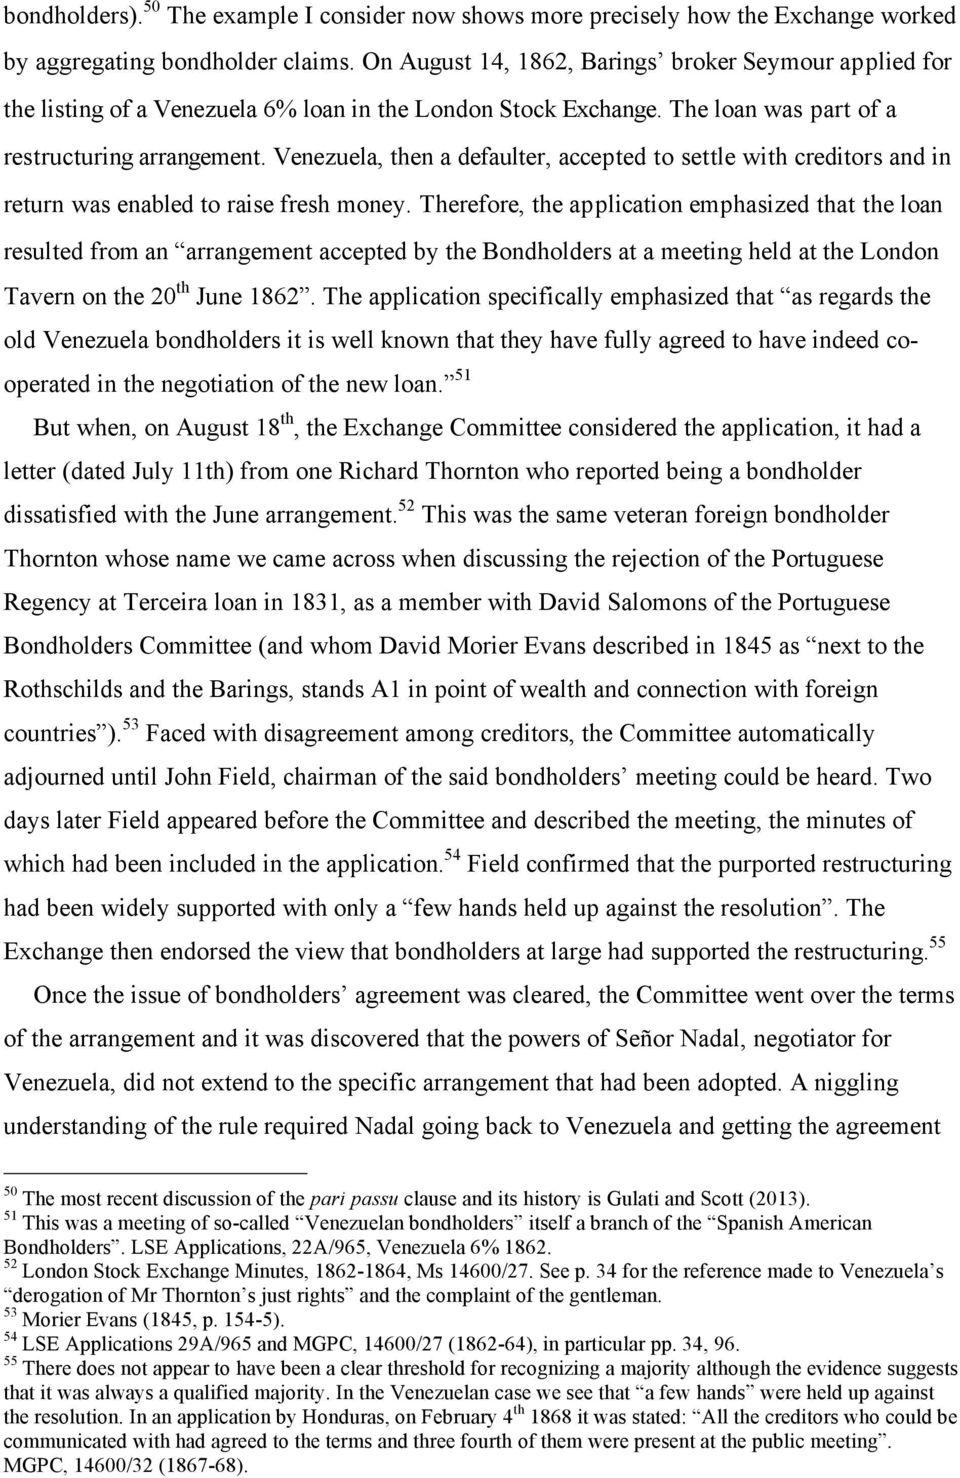 Venezuela, then a defaulter, accepted to settle with creditors and in return was enabled to raise fresh money.